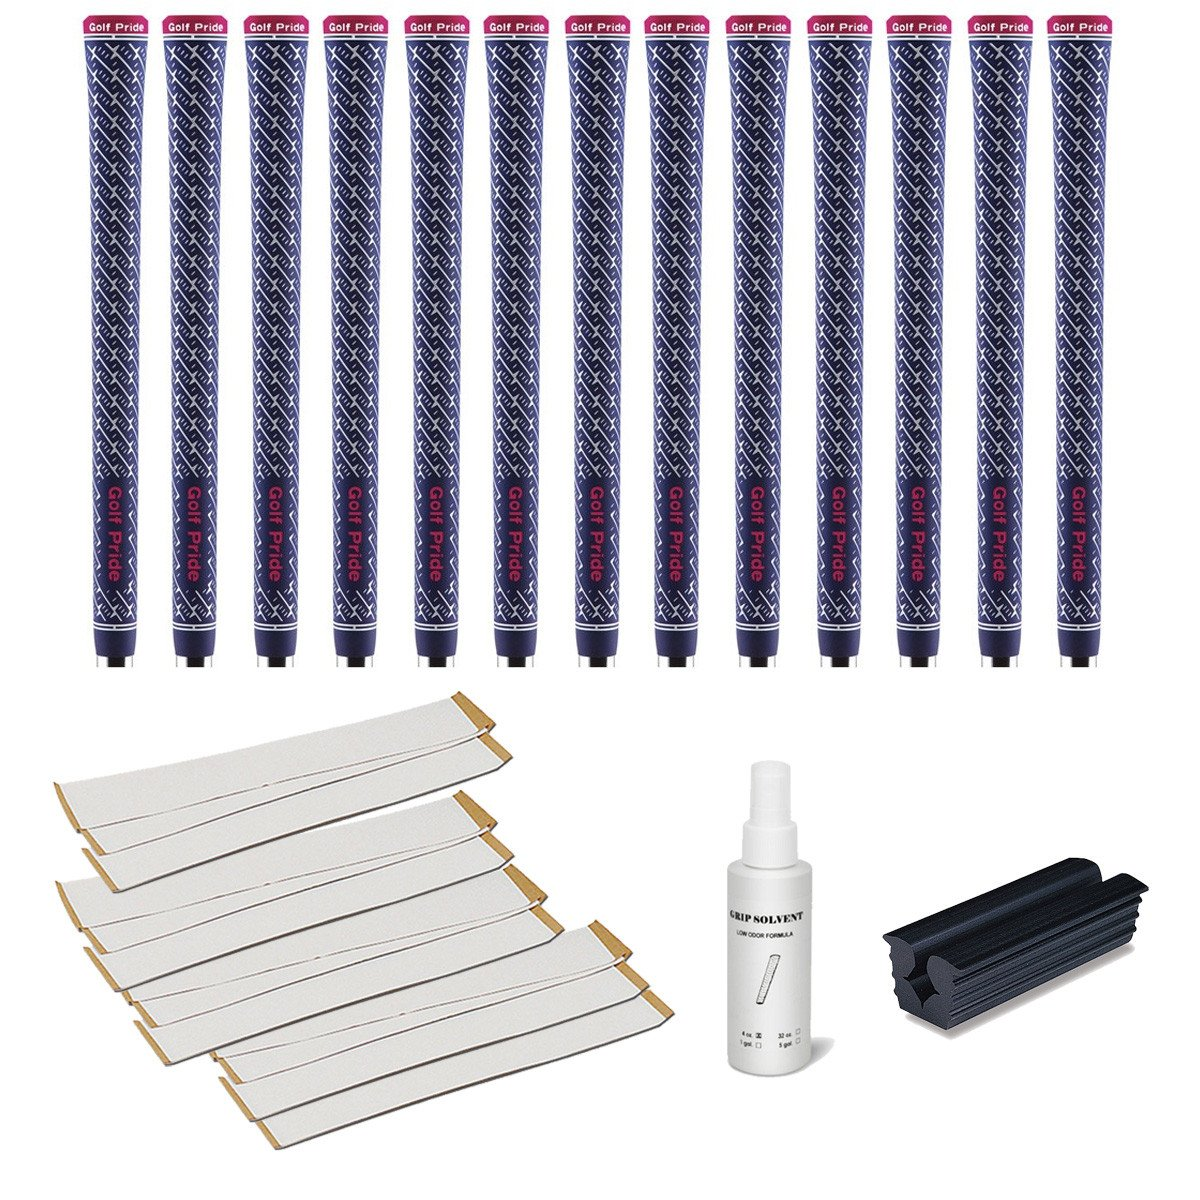 Golf Pride Patriot Z Grip Kit (13-Piece)